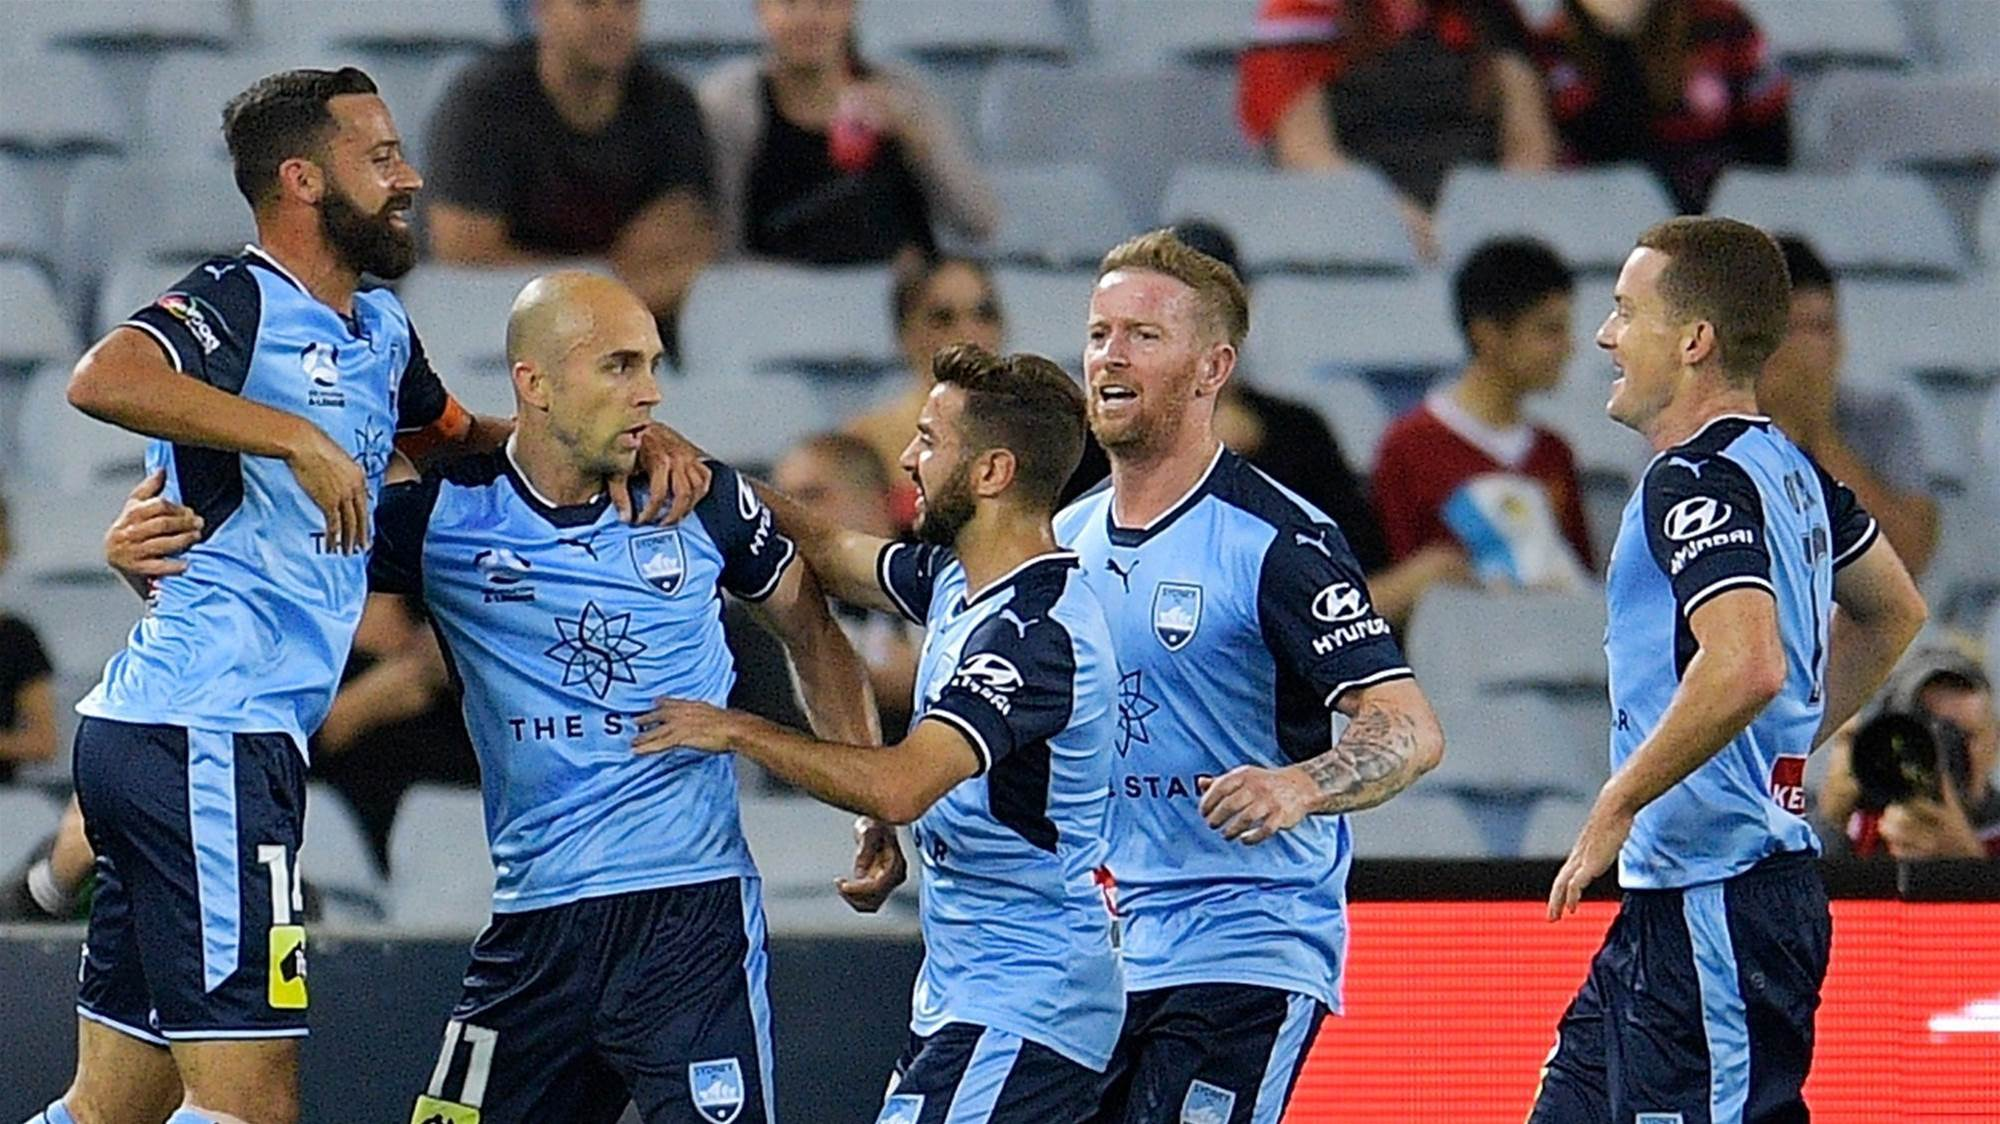 Sydney FC: Win over City will send a message